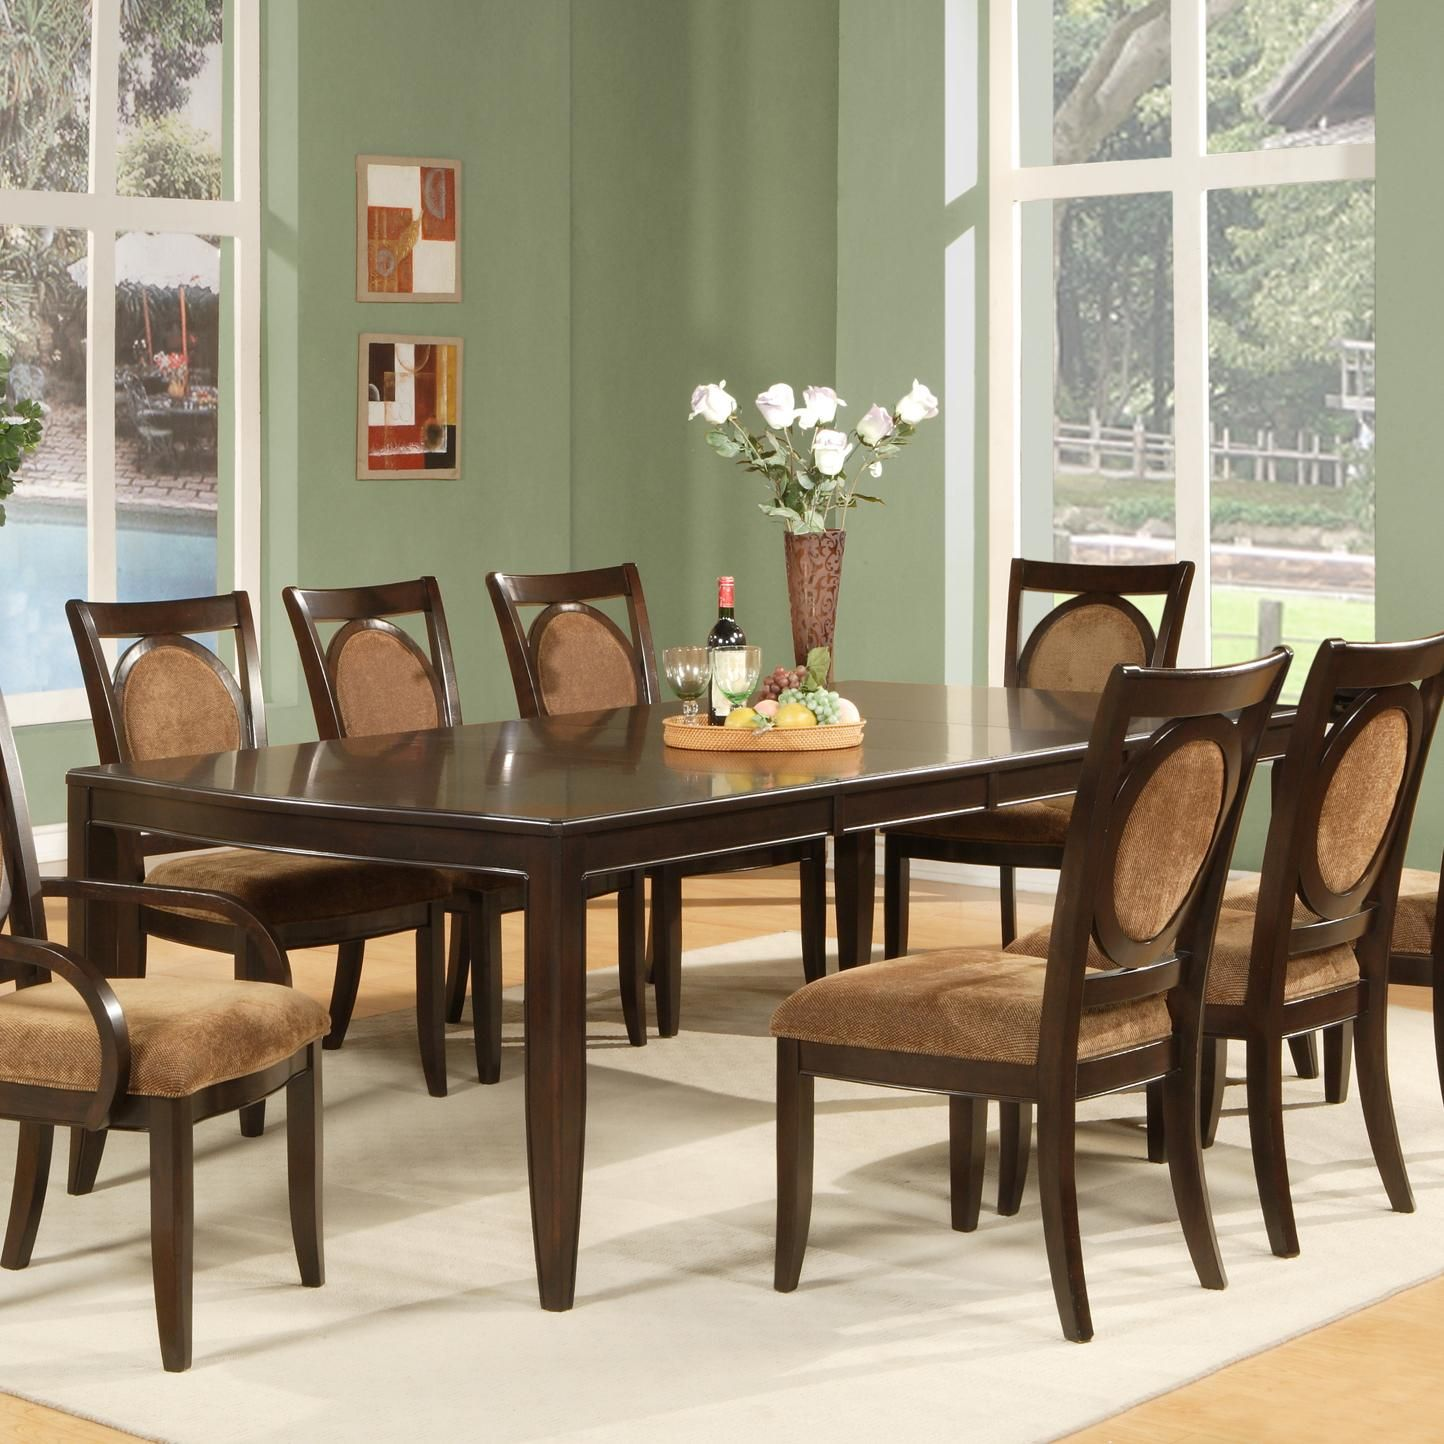 Formal Dining Sets Store  Rooms And Rest  Mankato Austin New Interesting Steve Silver Dining Room Set Design Inspiration